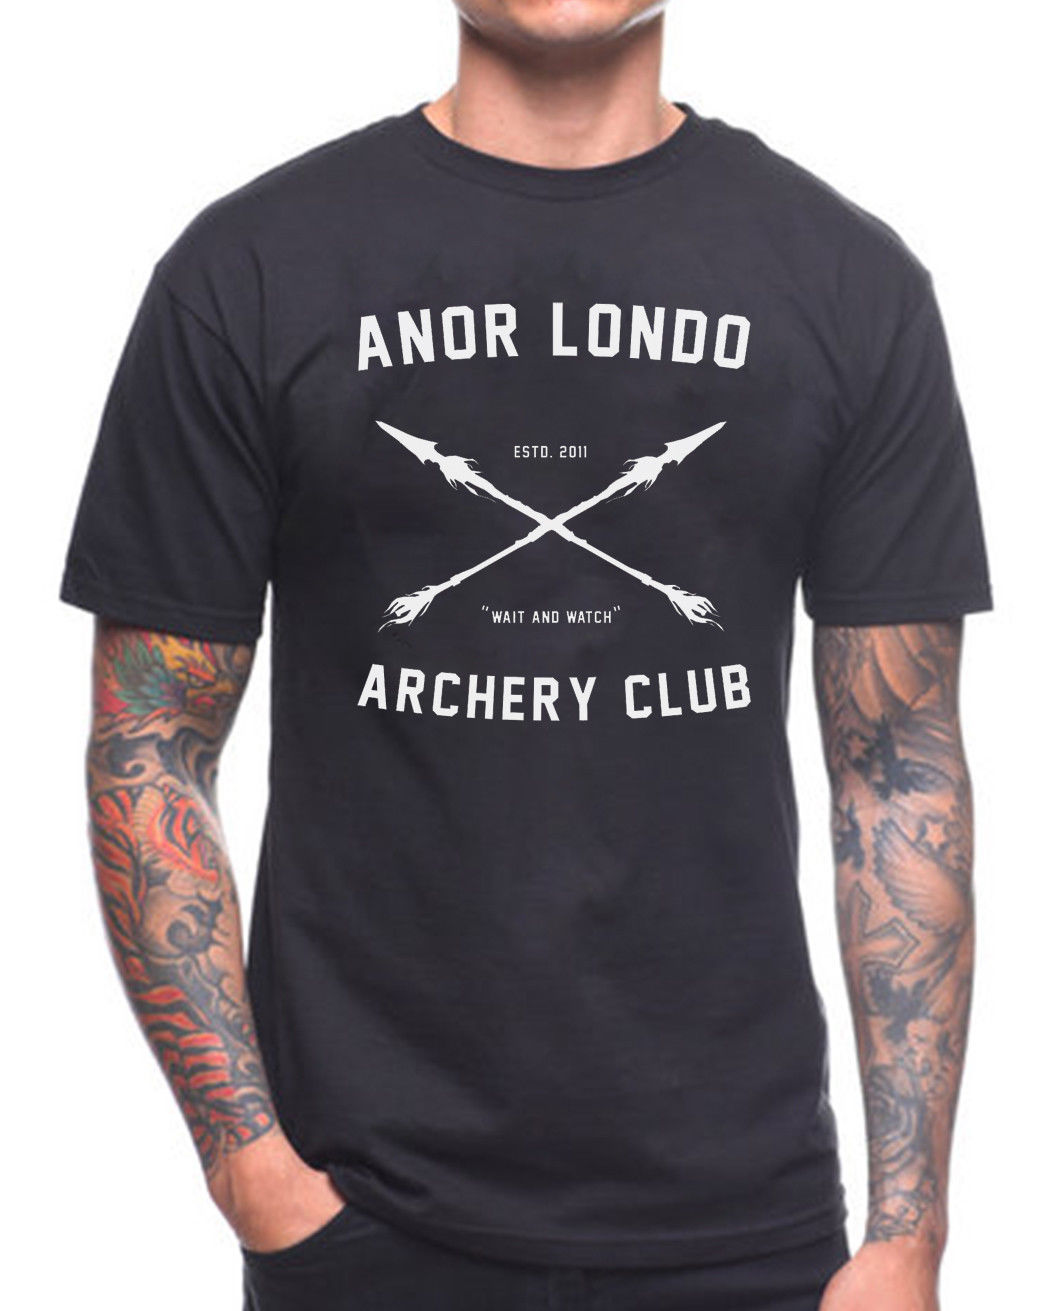 ANOR LONDO ARCHERY CLUB T SHIRT DARK SOULS XBOX GAME GAMER BIRTHDAY PRESENT Male Hip Hop funny Tee Shirts cheap wholesale image